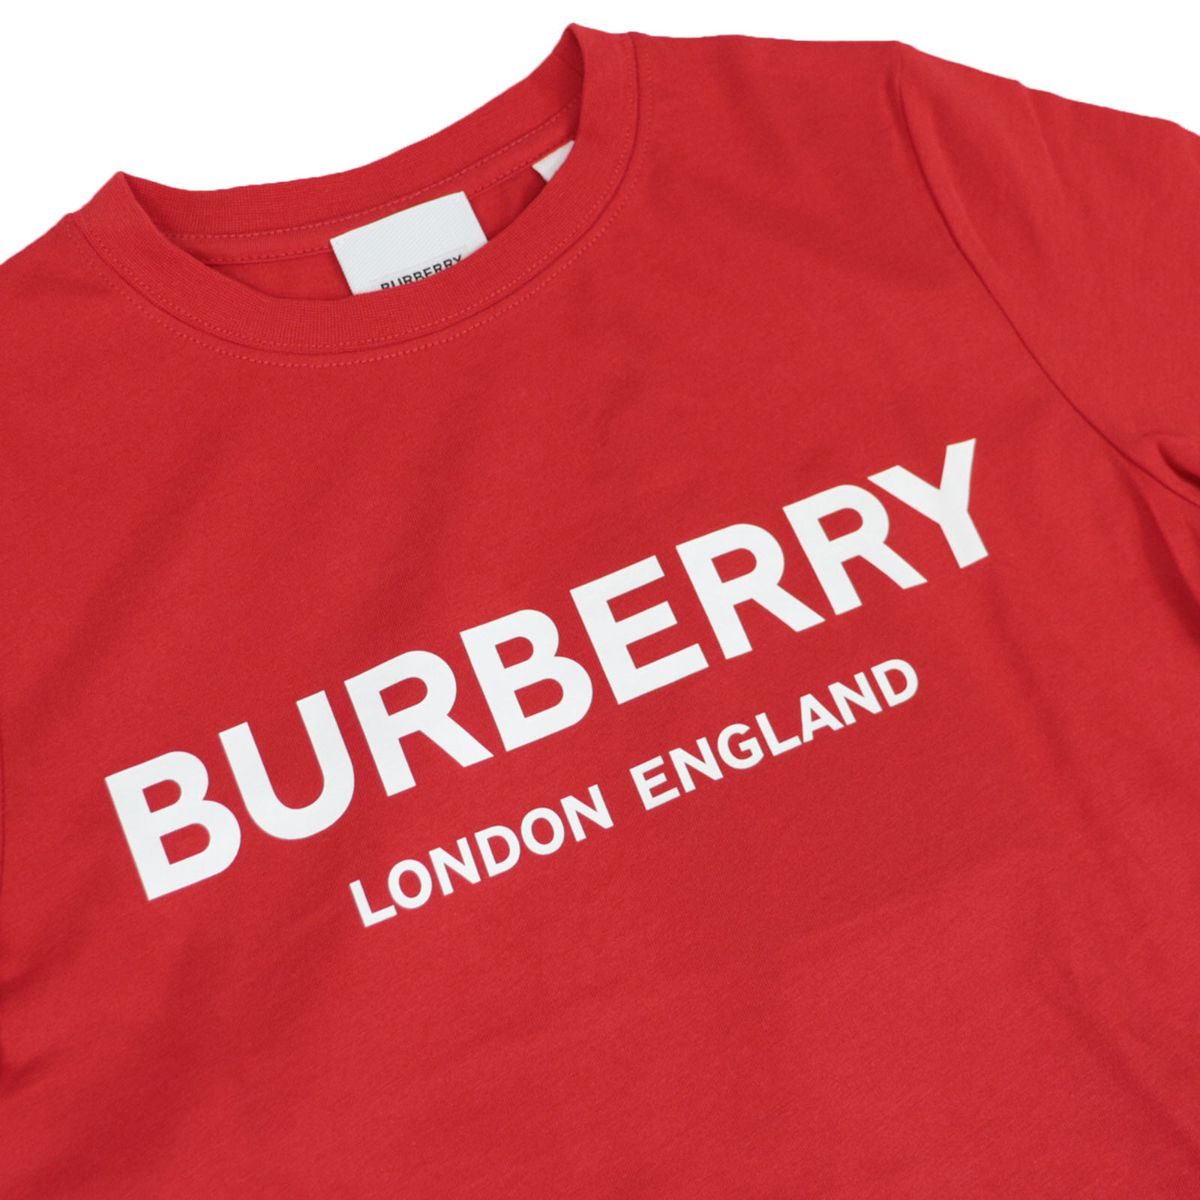 Short sleeve cotton t-shirt with logo print Red Burberry